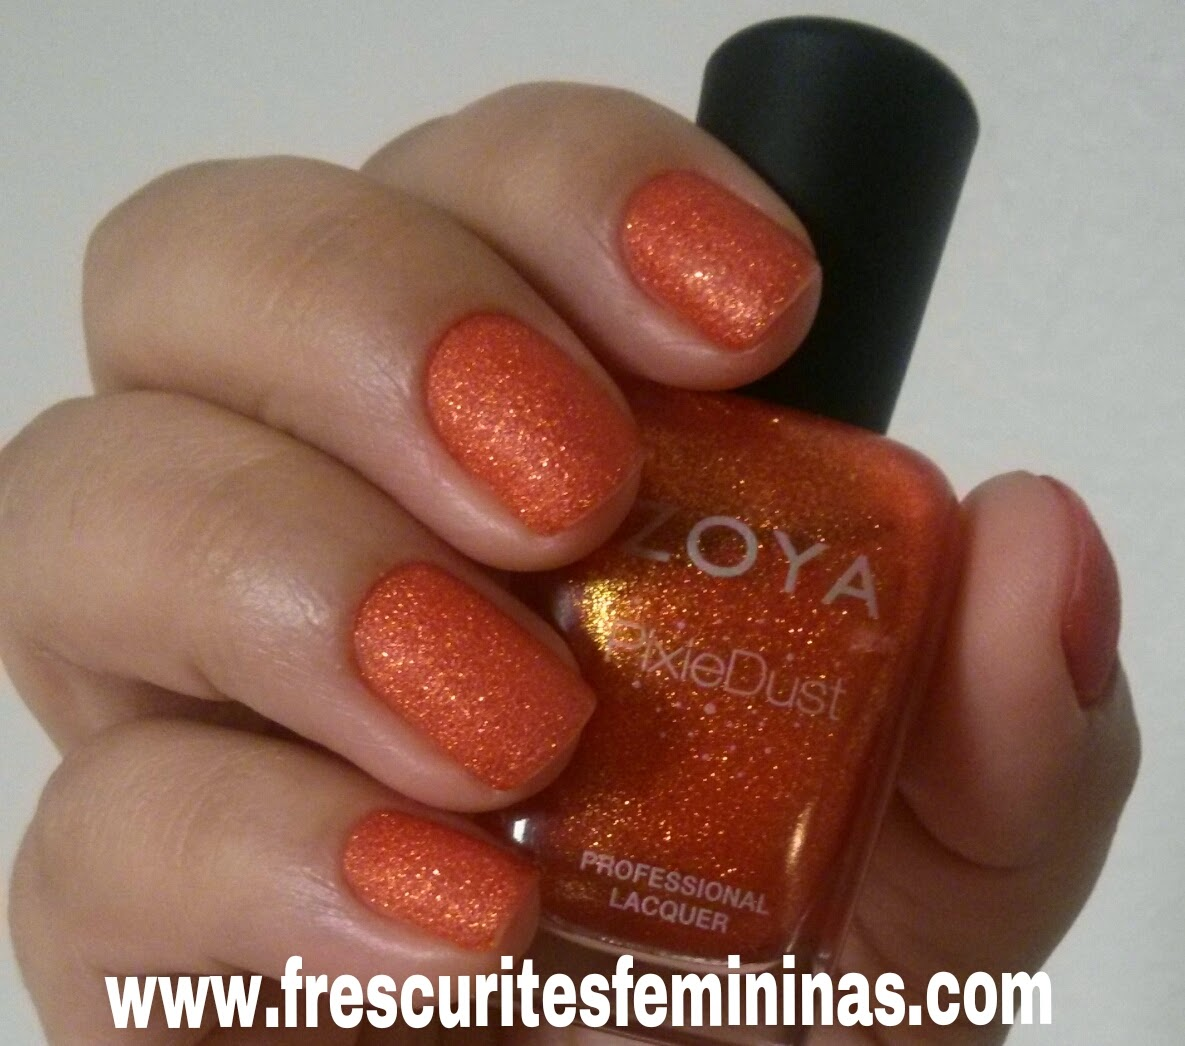 frescurites femininas, zoya, pixie dust, dhara, nail, polish, orange nails